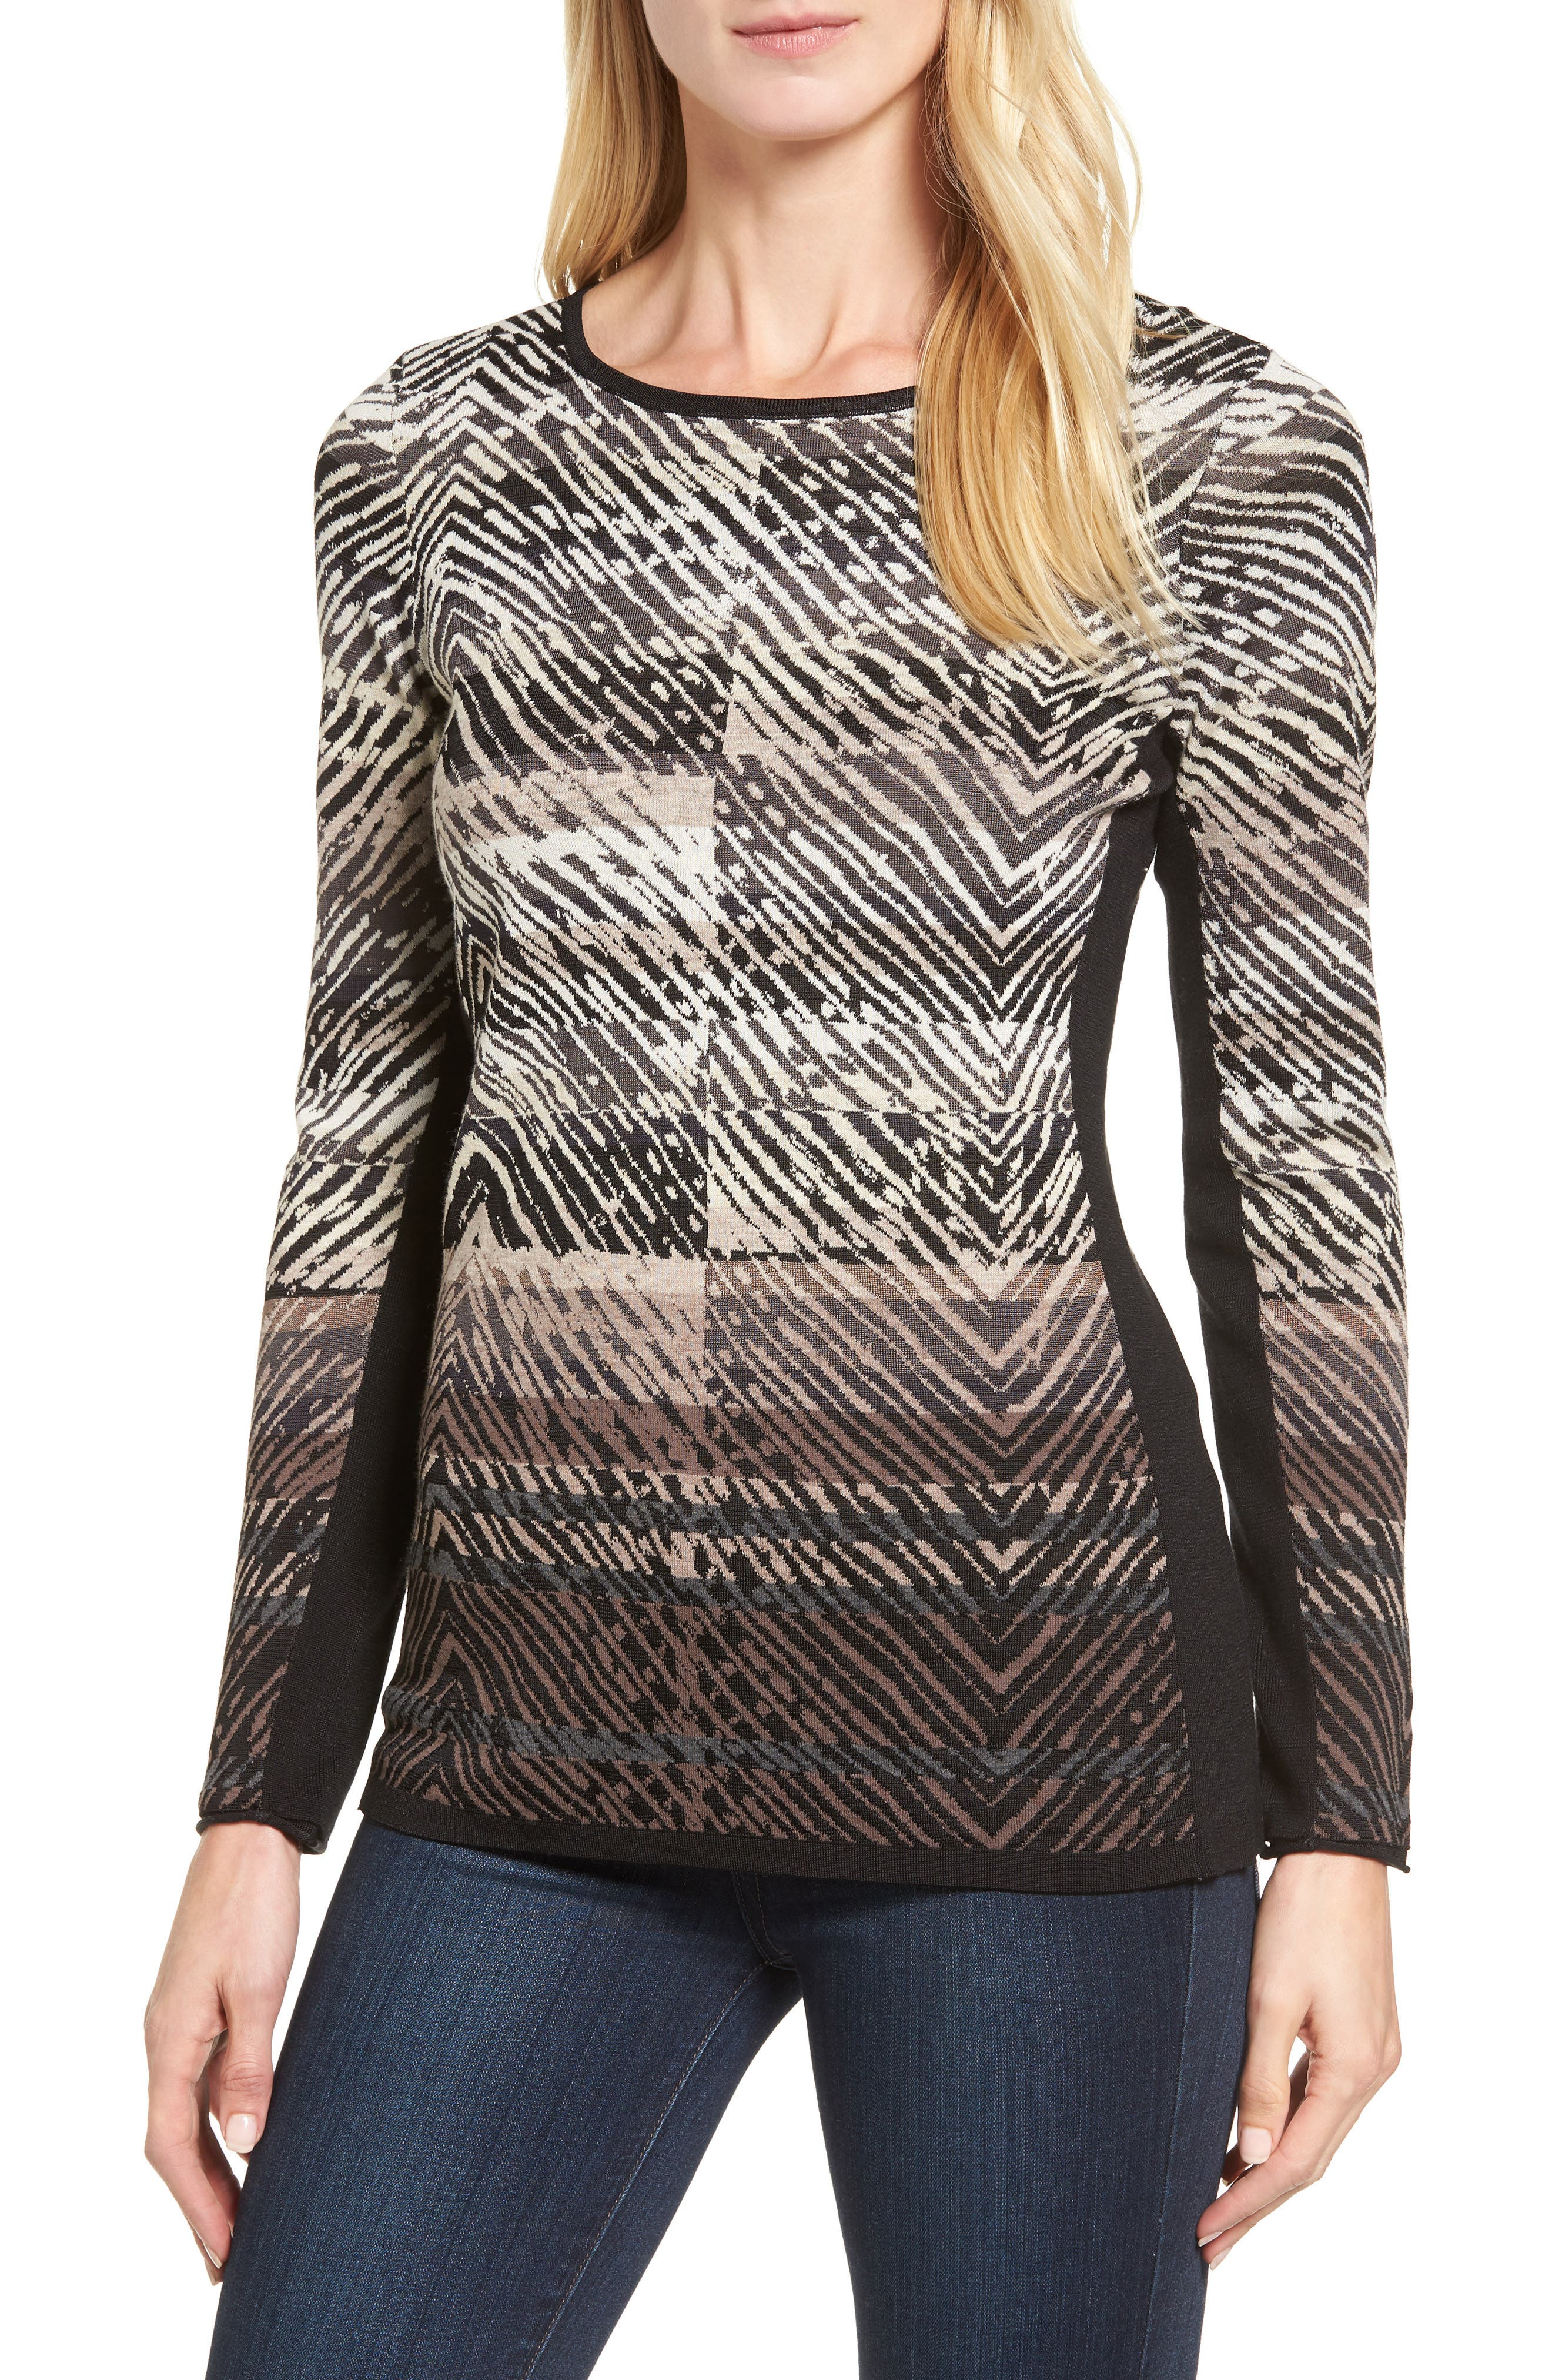 Coastline Top,                         Main,                         color, 261